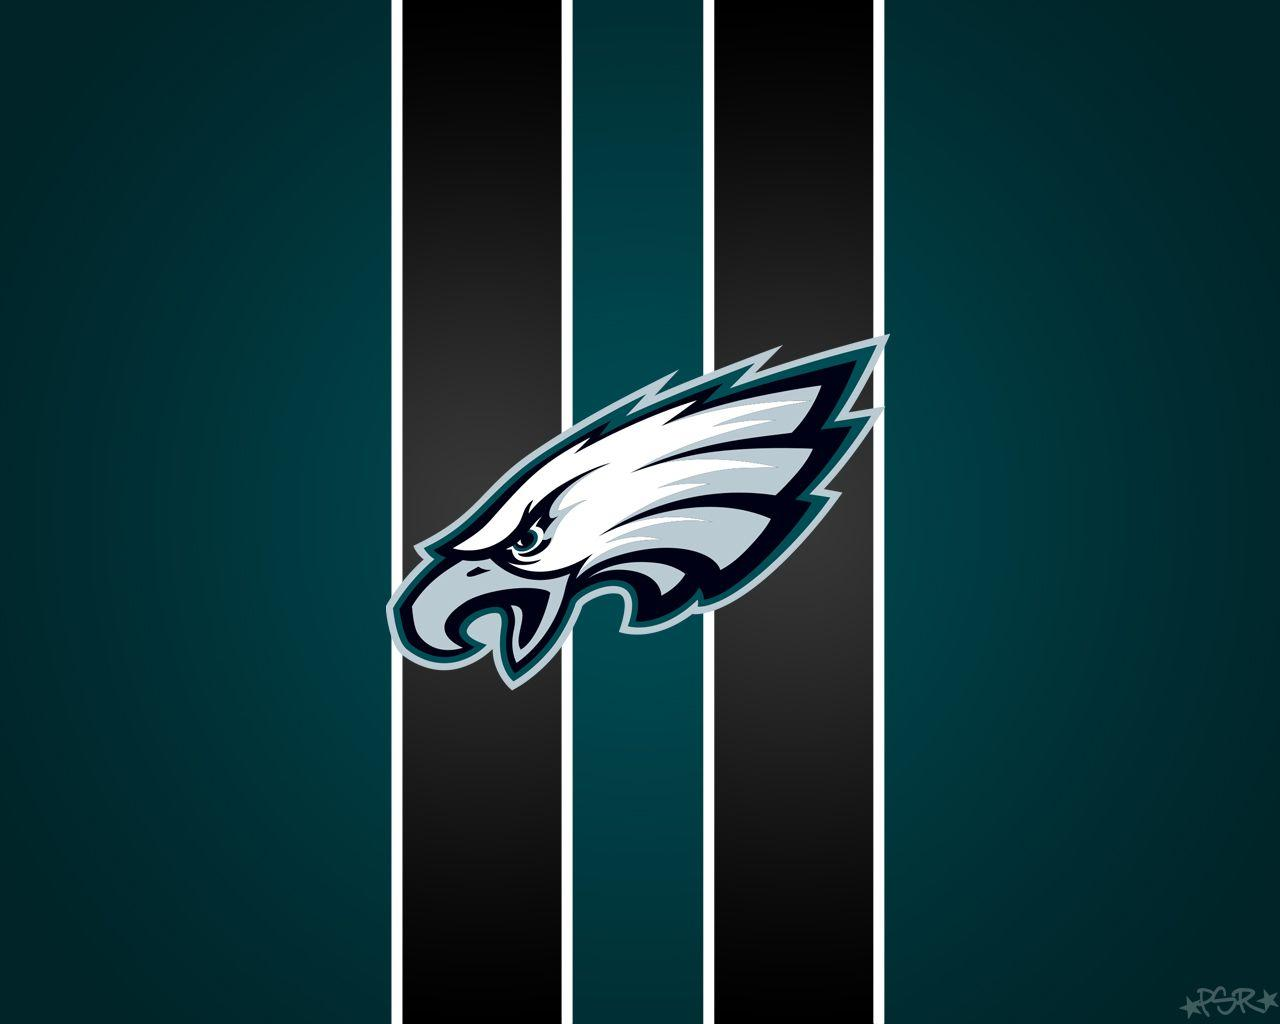 Sports Philadelphia Eagles Wallpaper 1280x1024 px Free Download .